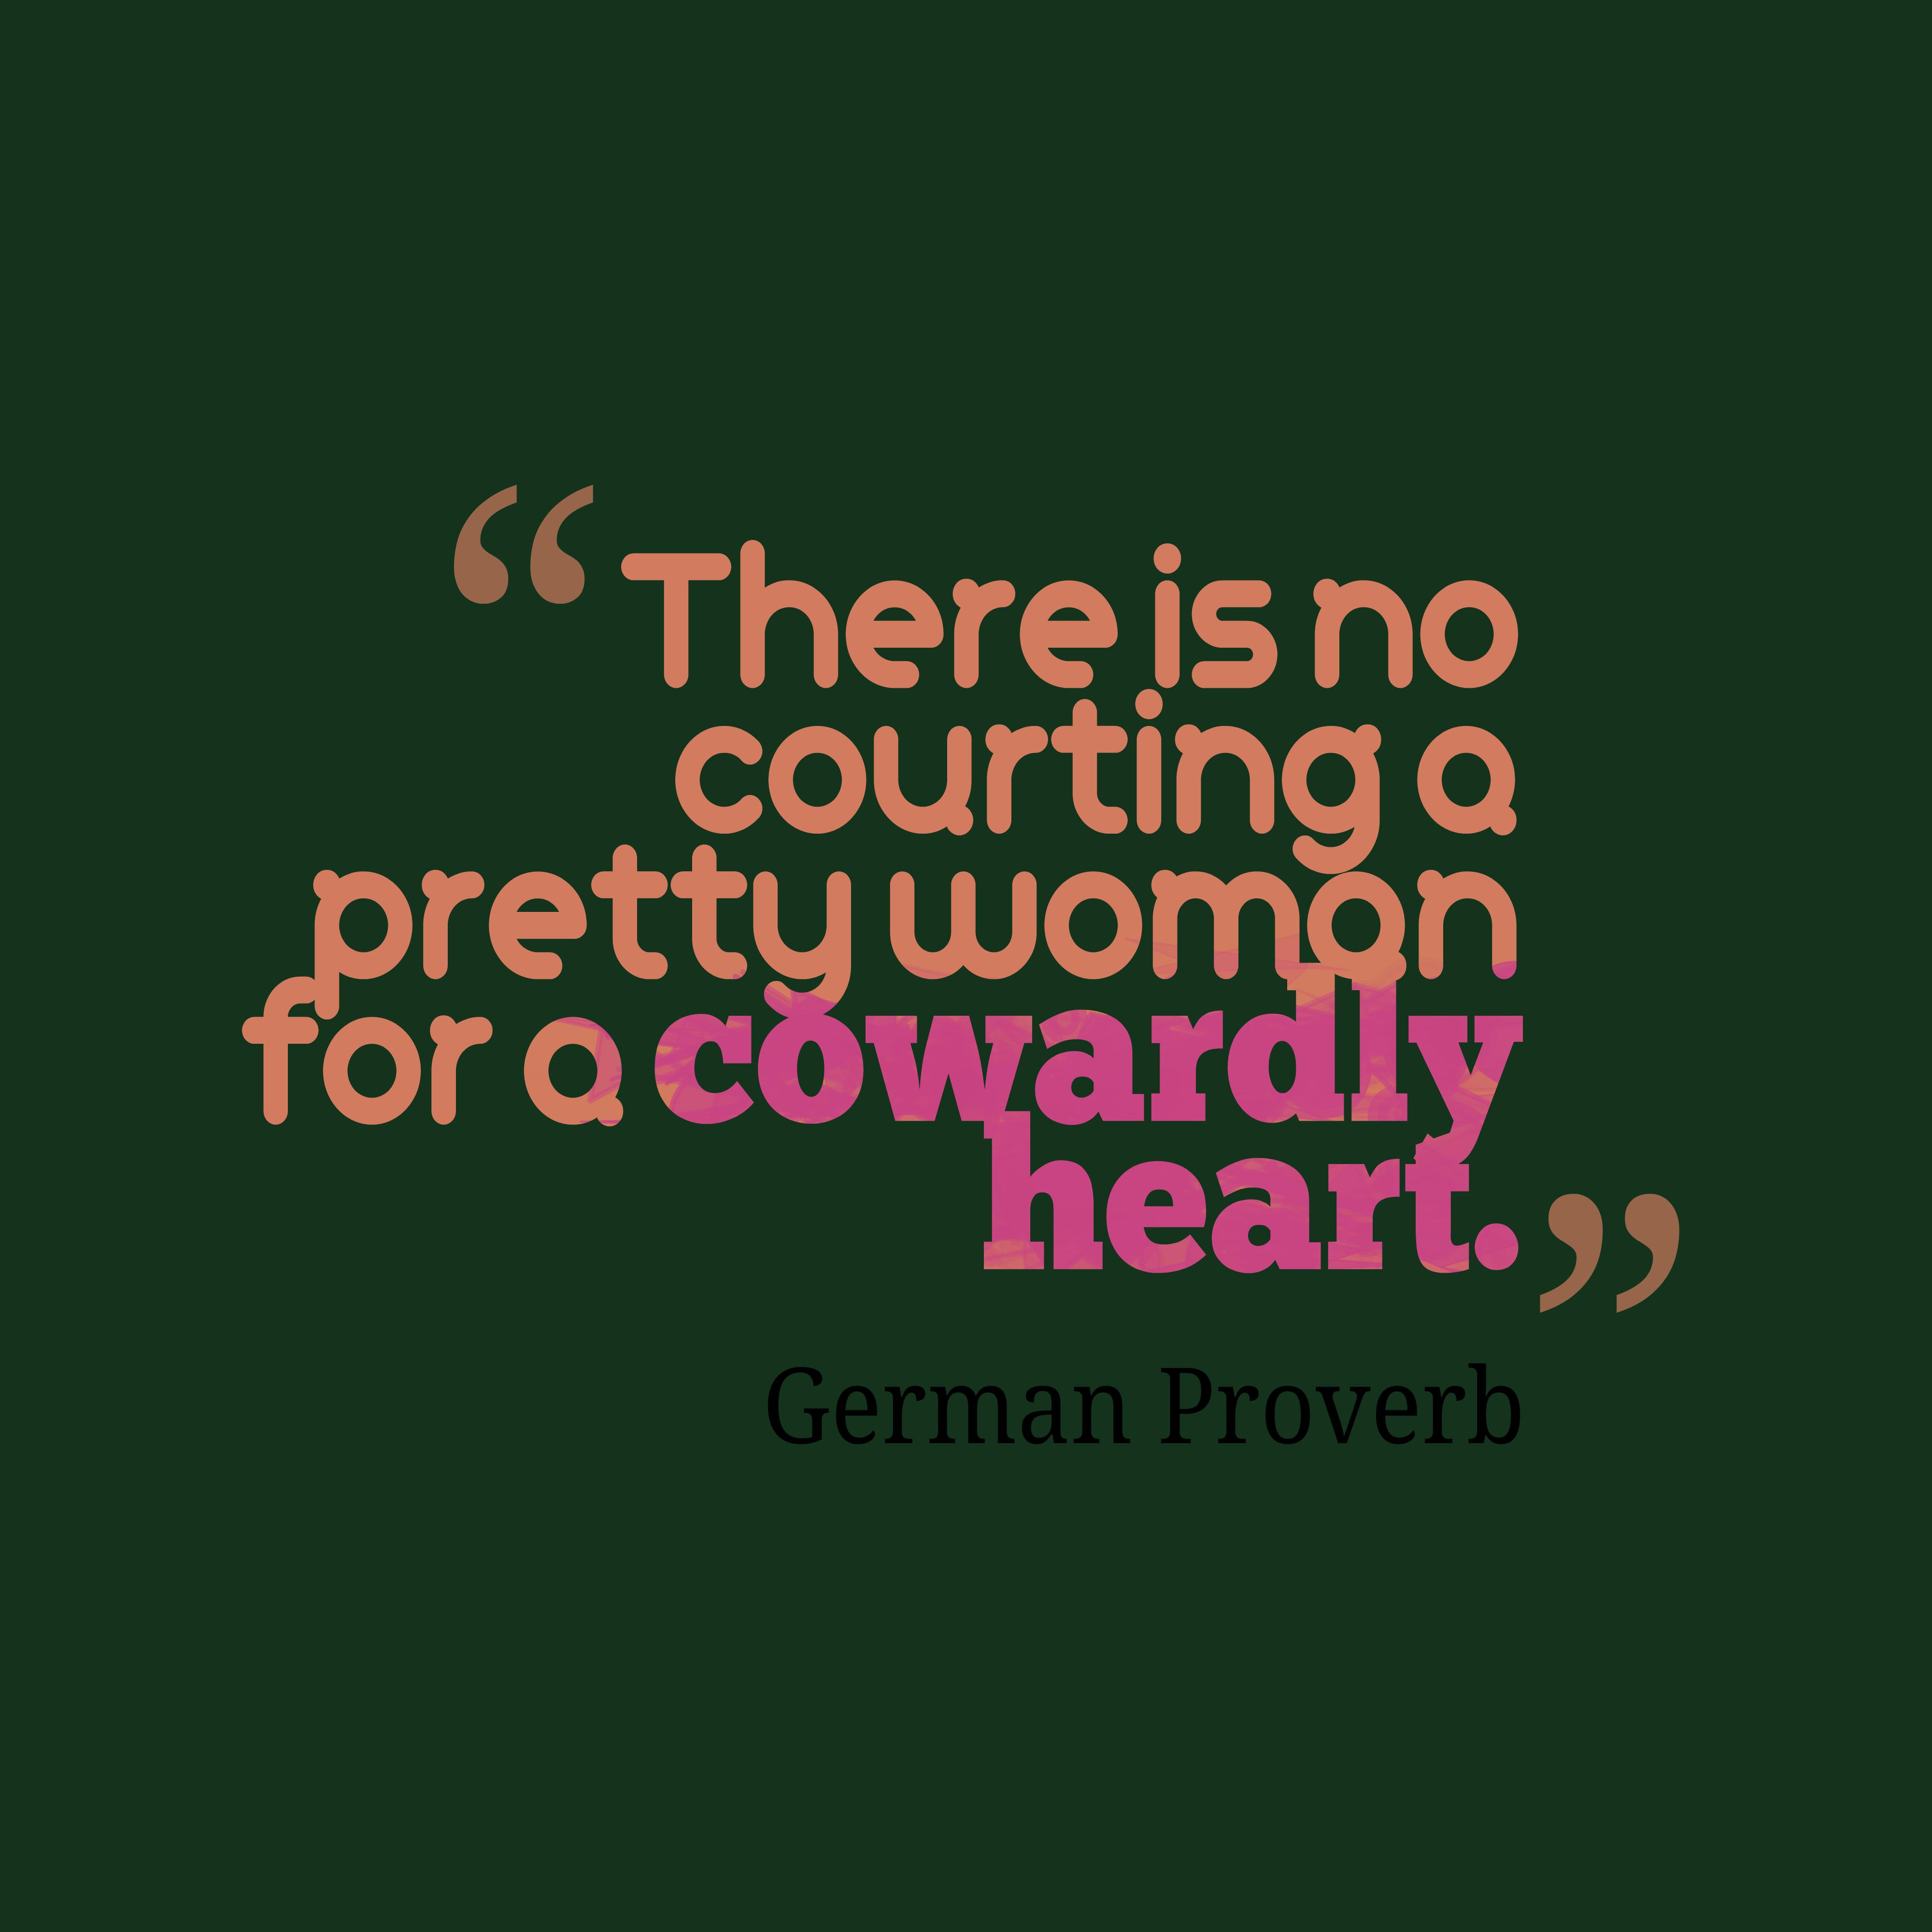 Quotes image of There is no courting a pretty woman for a cowardly heart.